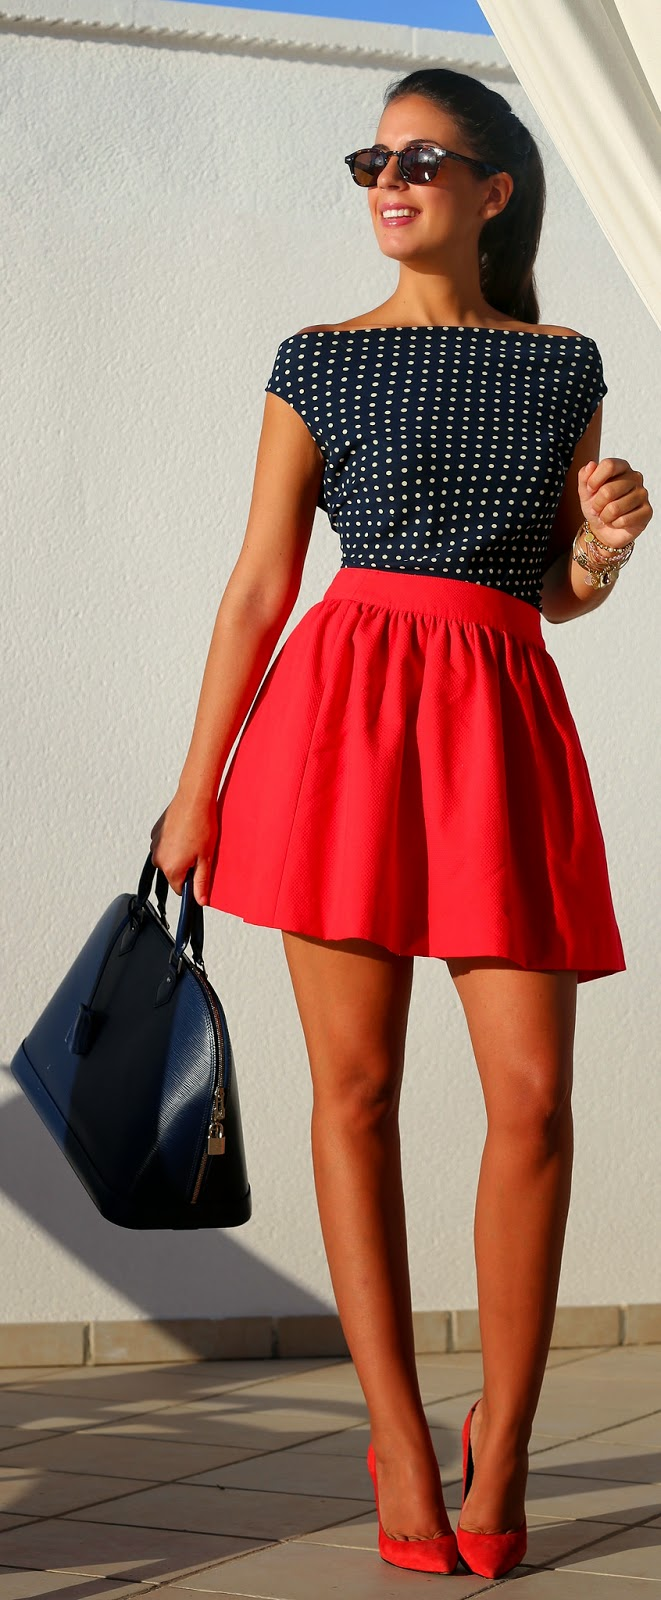 Polka Dots Off Shoulder Top with Red Ruffle Skirt | Chic Street Outfits